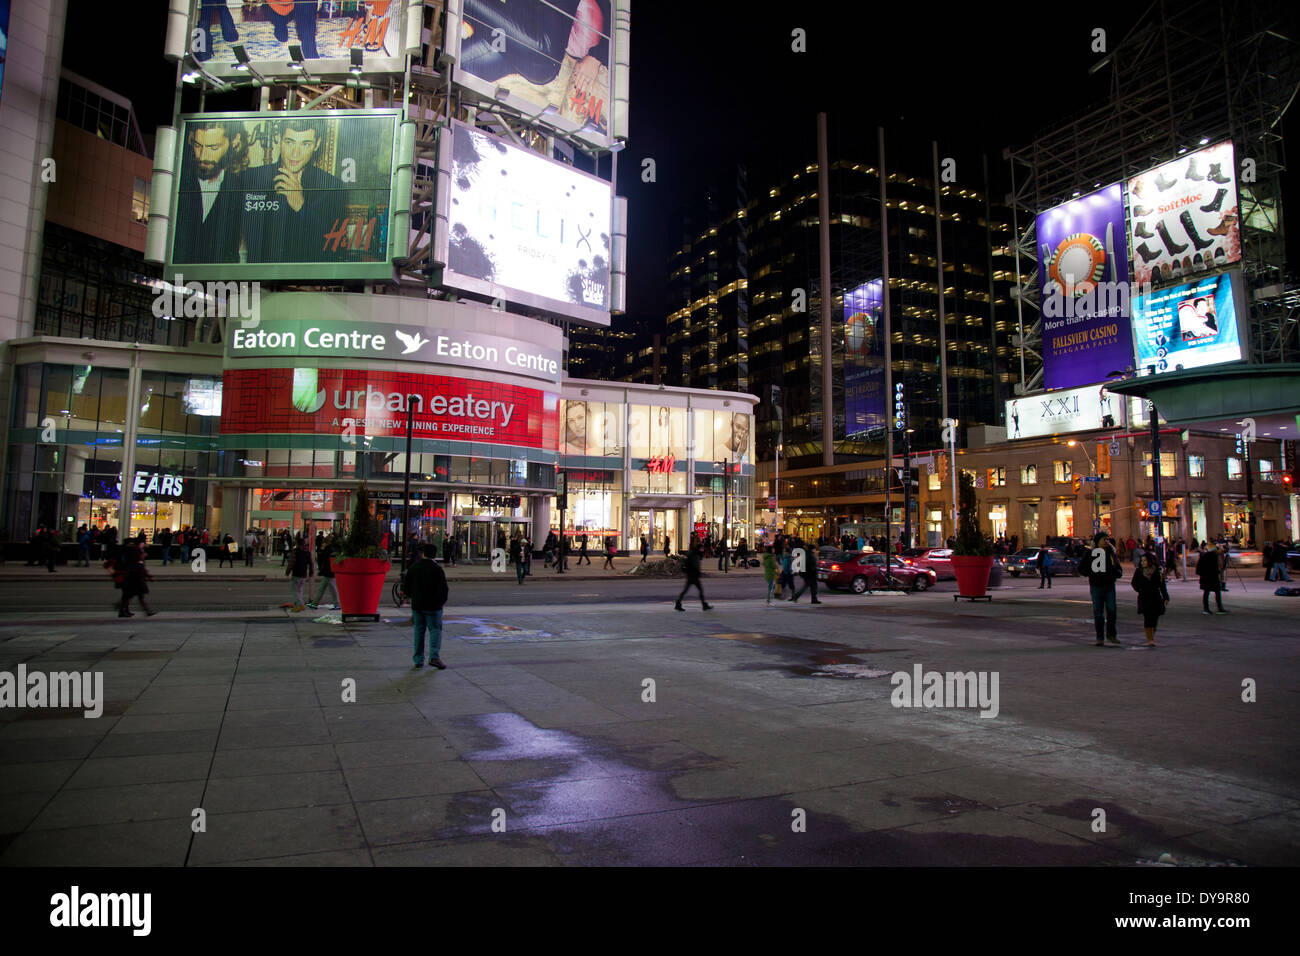 dundas square in toronto at night with billboards - Stock Image